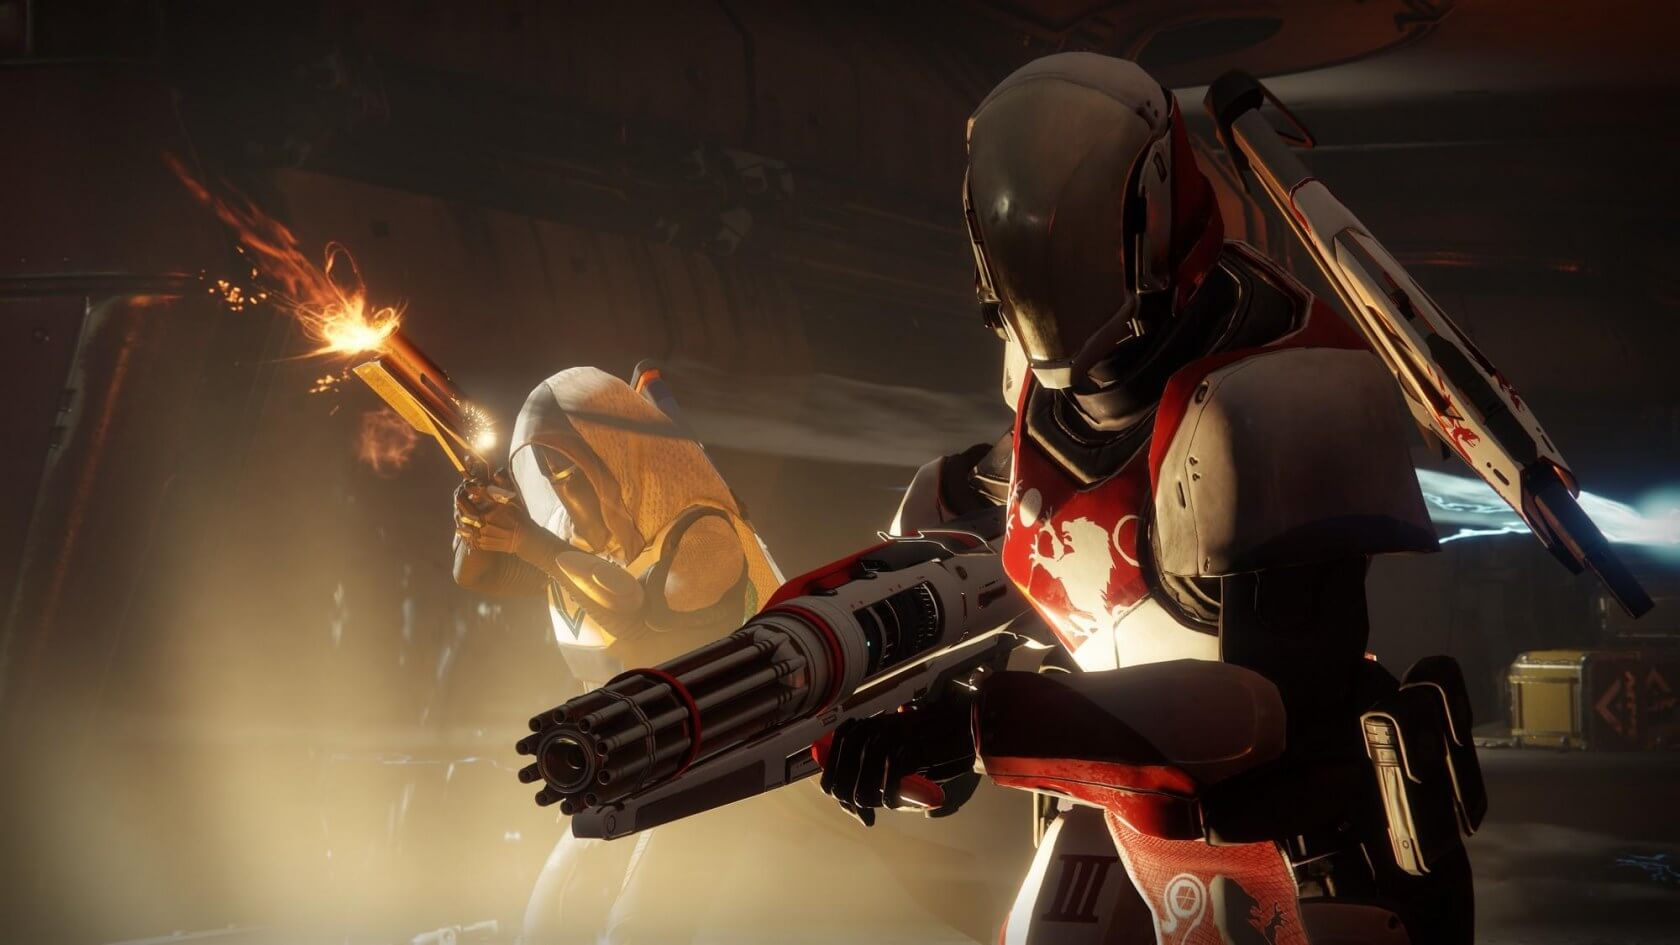 Destiny 2 is free to keep if you download it on PC before November 18